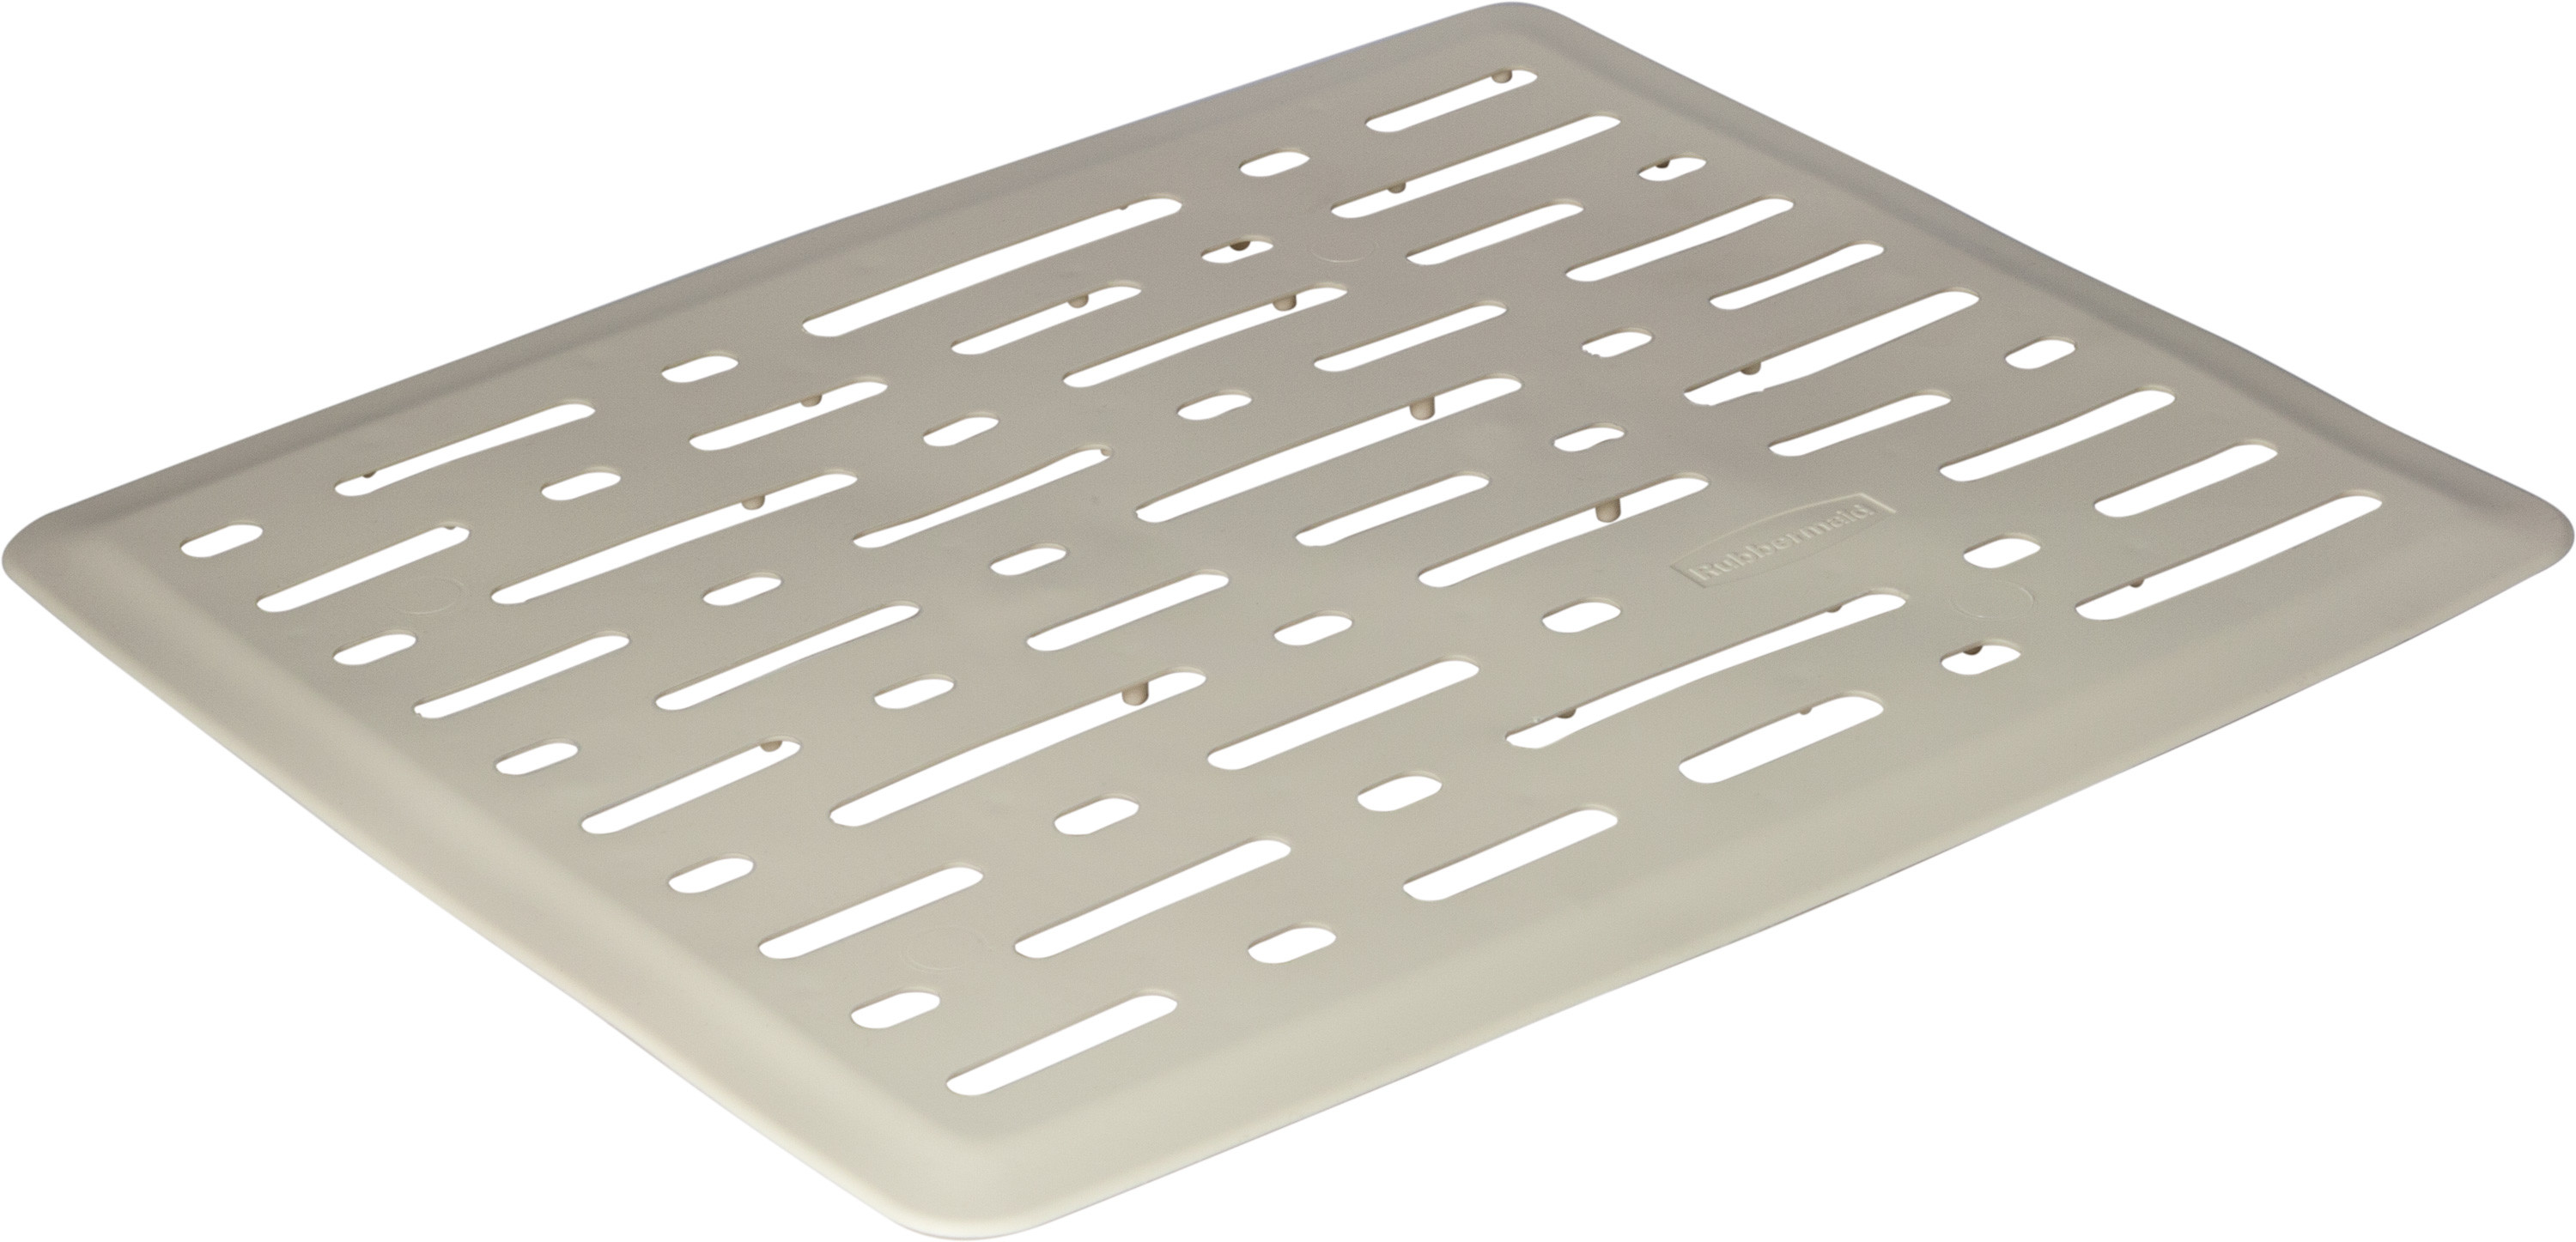 Rubbermaid Home 1G1706BISQU Small Bisque Beige Sink Mat. Tap To Expand